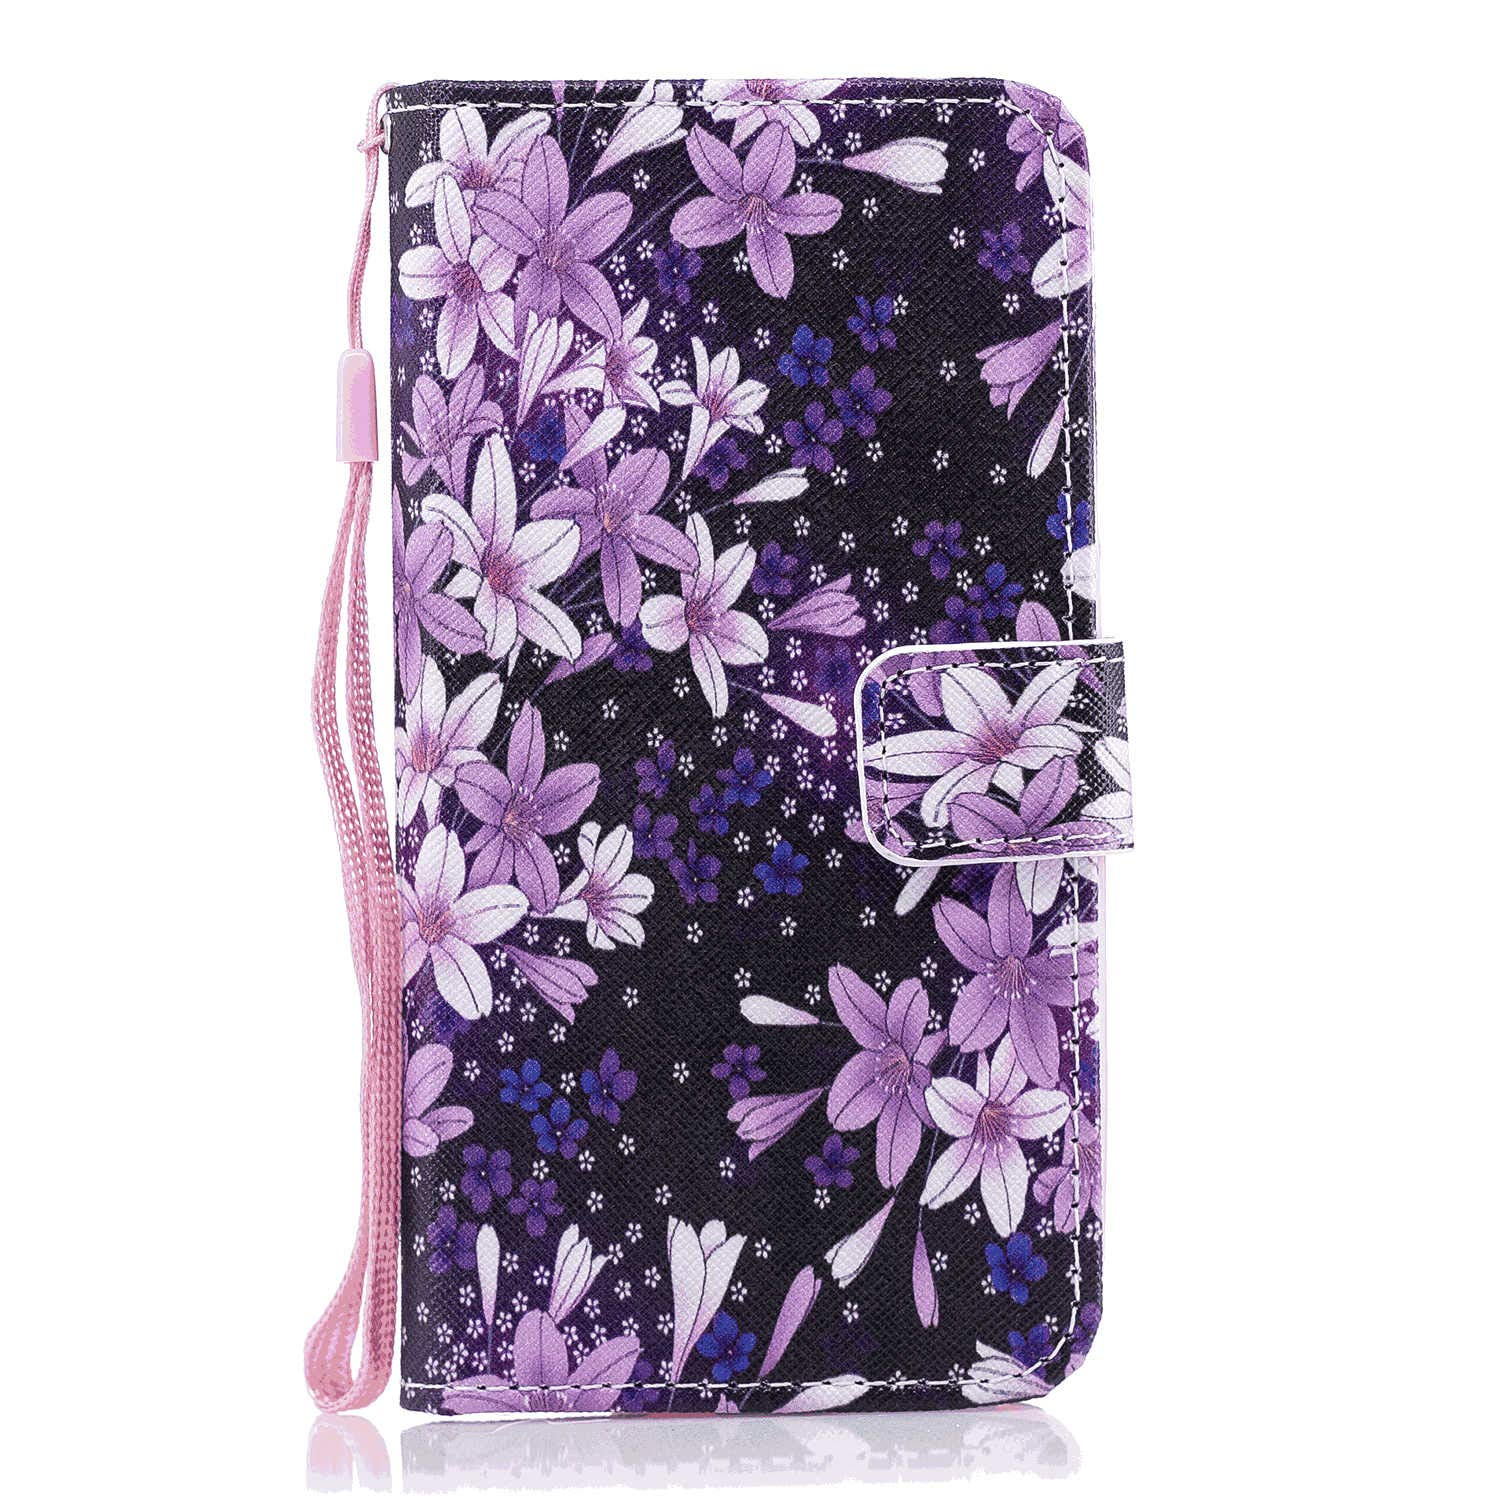 Samsung Galaxy S10 Plus Flip Case, Cover for Samsung Galaxy S10 Plus Leather Mobile Phone case Kickstand Card Holders Luxury Business with Free Waterproof-Bag Blue7